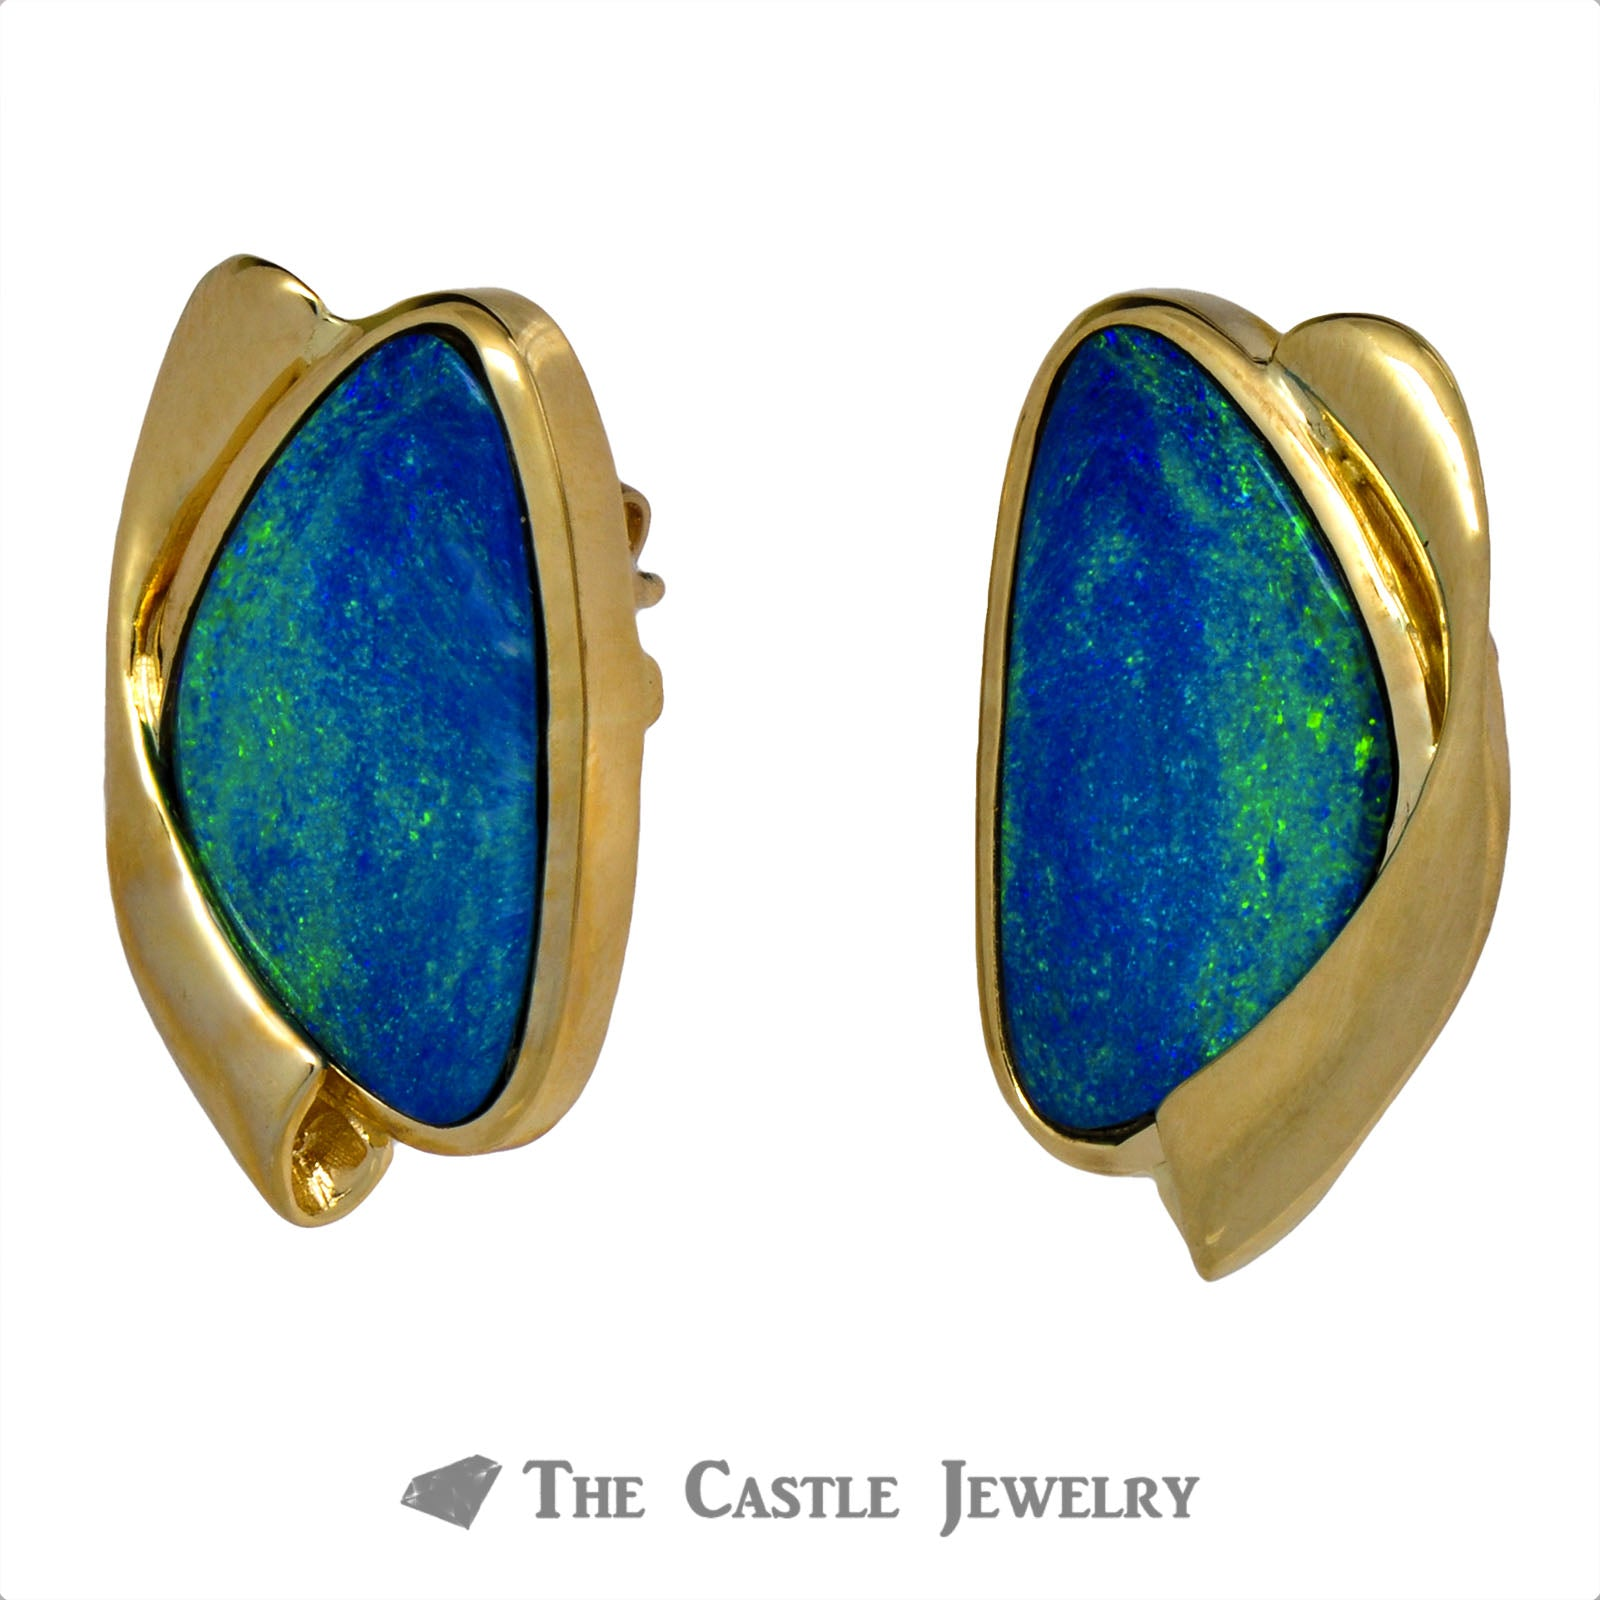 Stunning Black Opal Earrings with Twisted Hollow Gold Design-1